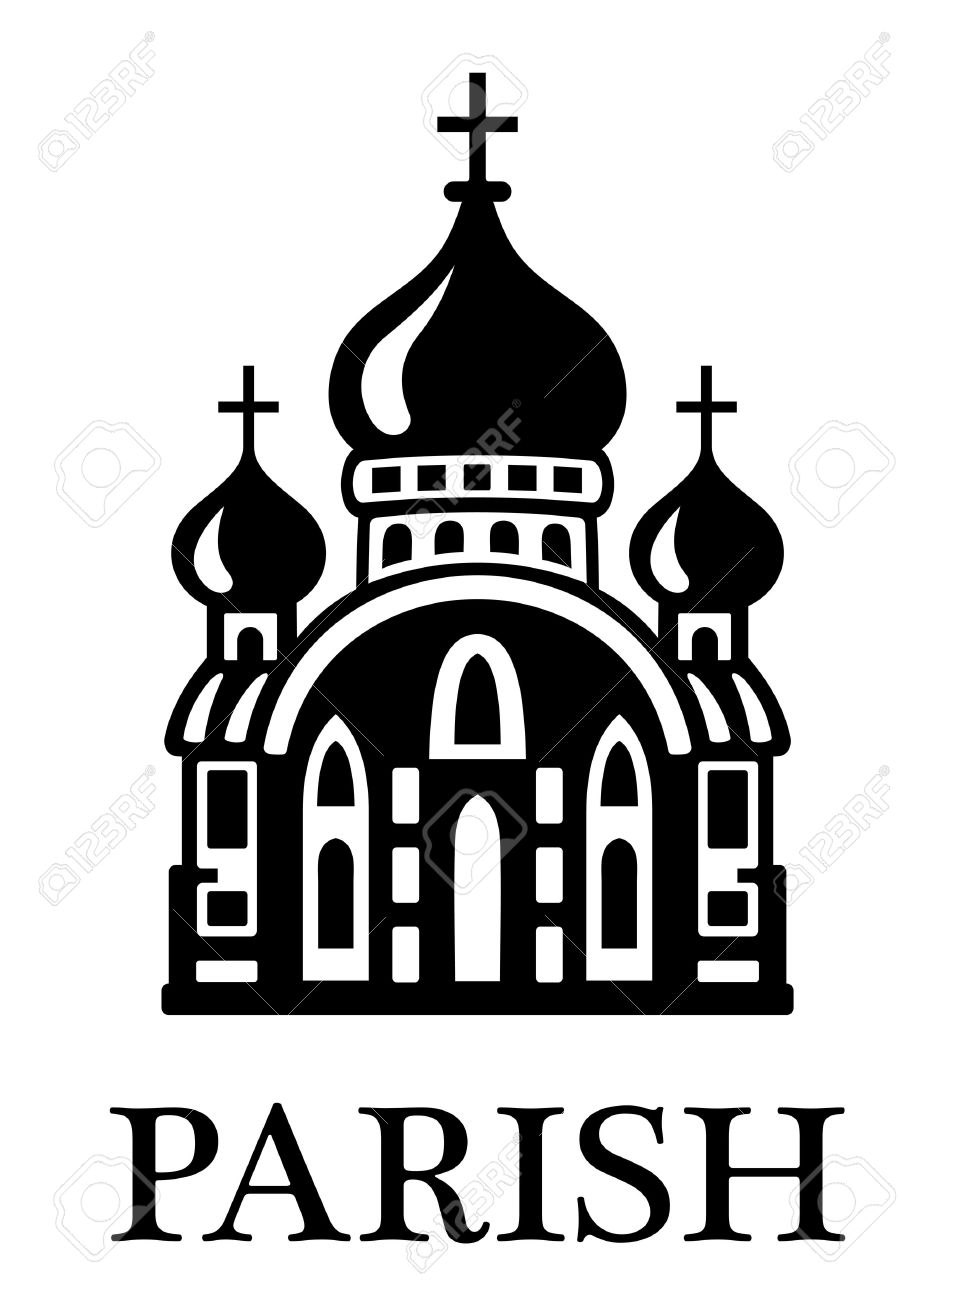 Black And White Parish Church Illustration With The Silhouette.